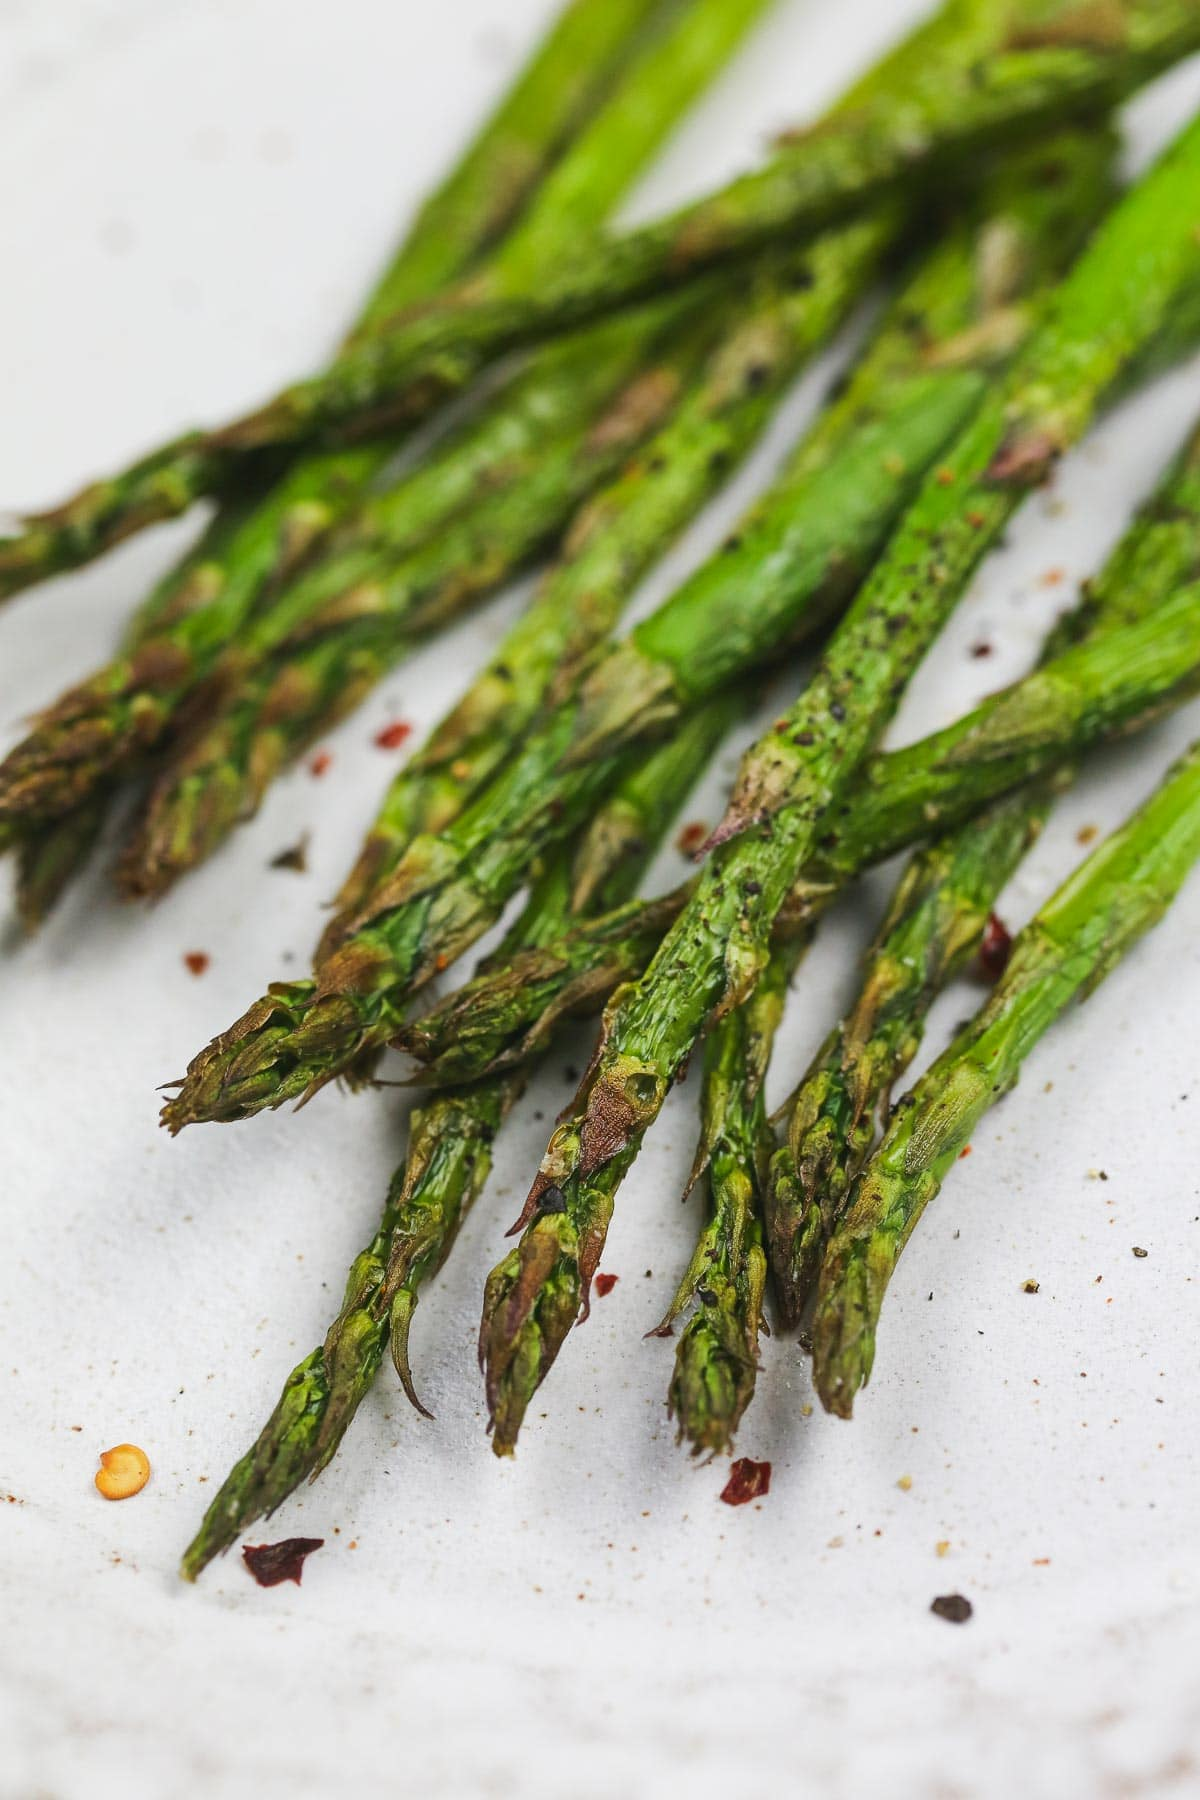 A close up shot of crispy asparagus with chilli flakes.